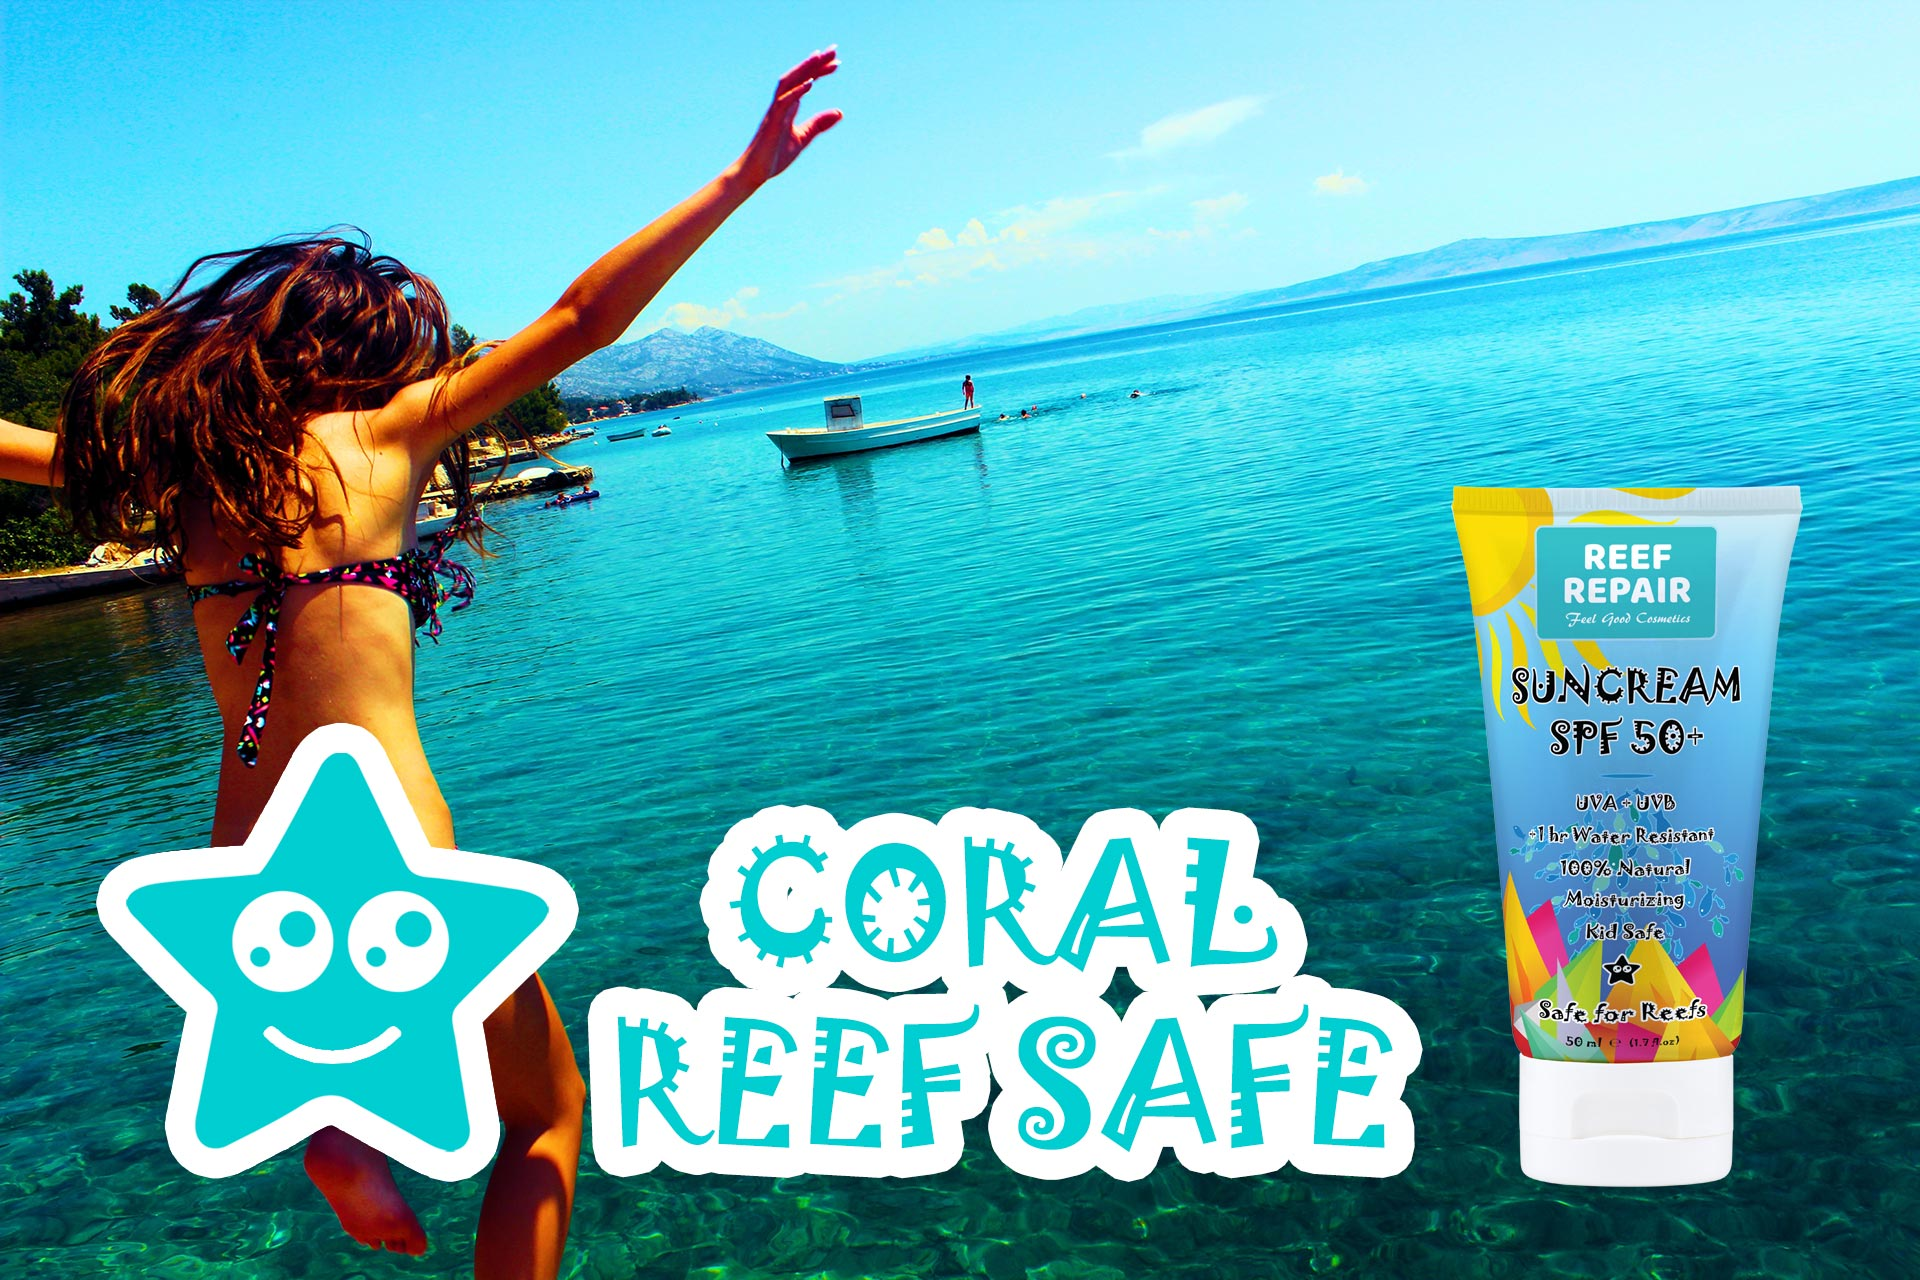 Coral Reef Safe Sunscreen Spf 50 Broad Spectrum Protection By Reef Repair 50ml